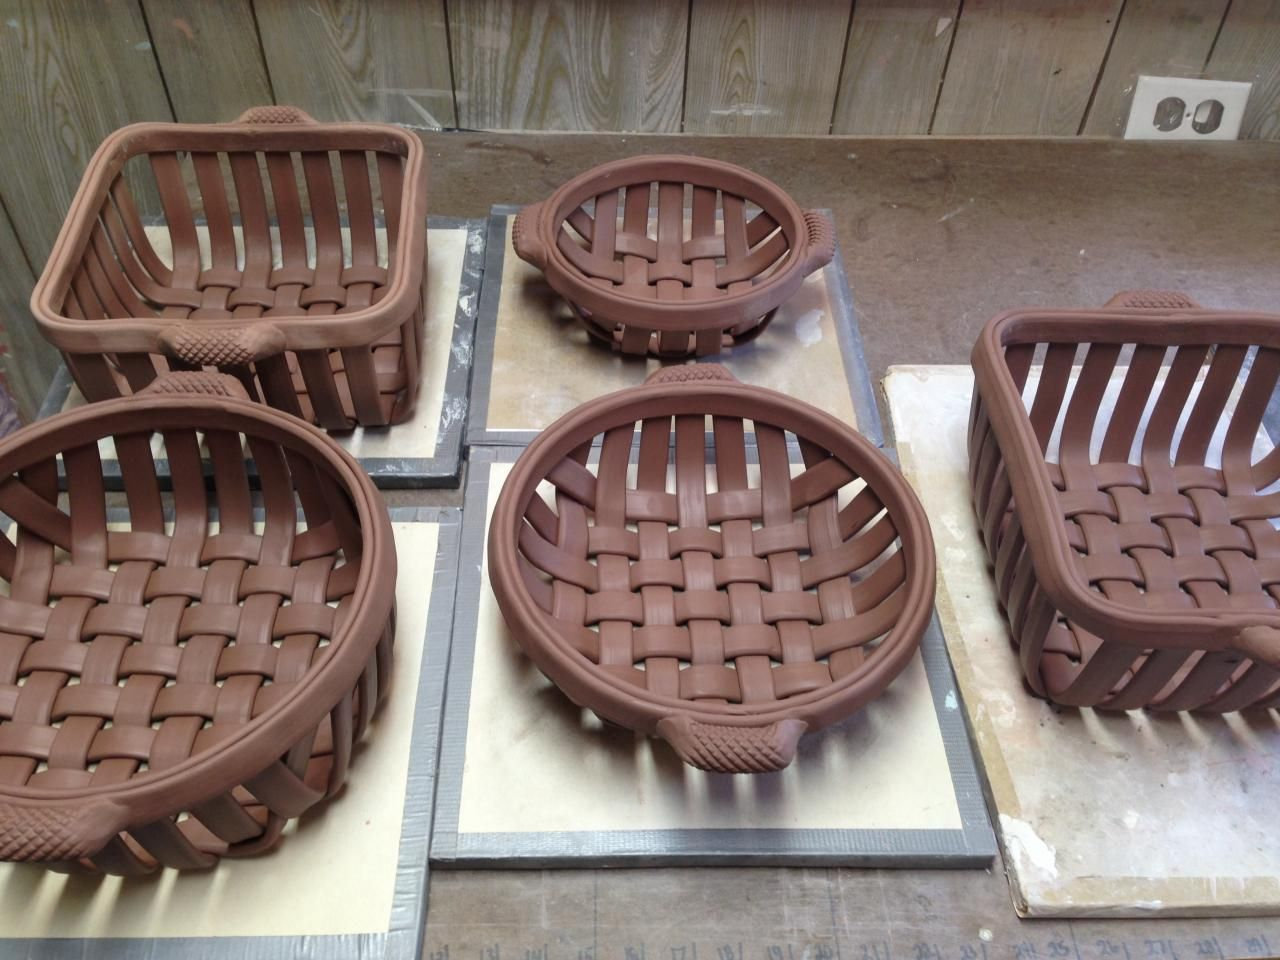 Woven clay baskets google search clay pinterest for Clay making ideas